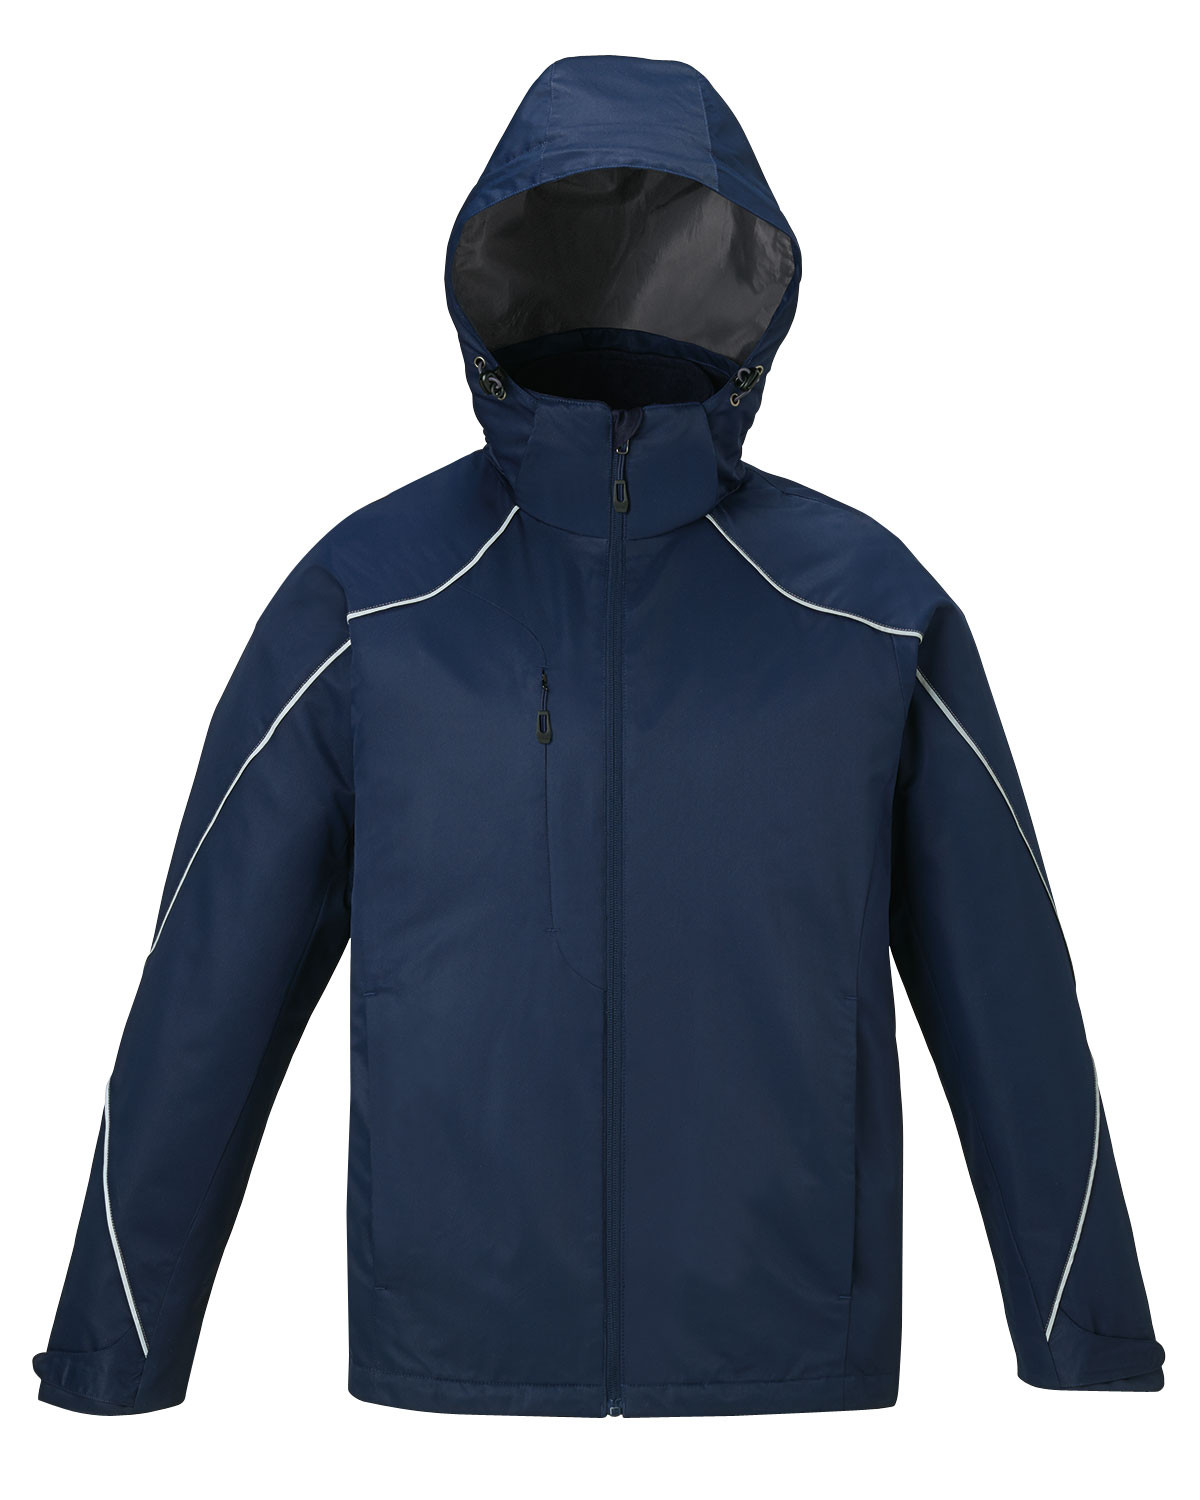 Ash City System Jackets 88196T - Angle Men's Tall 3-...